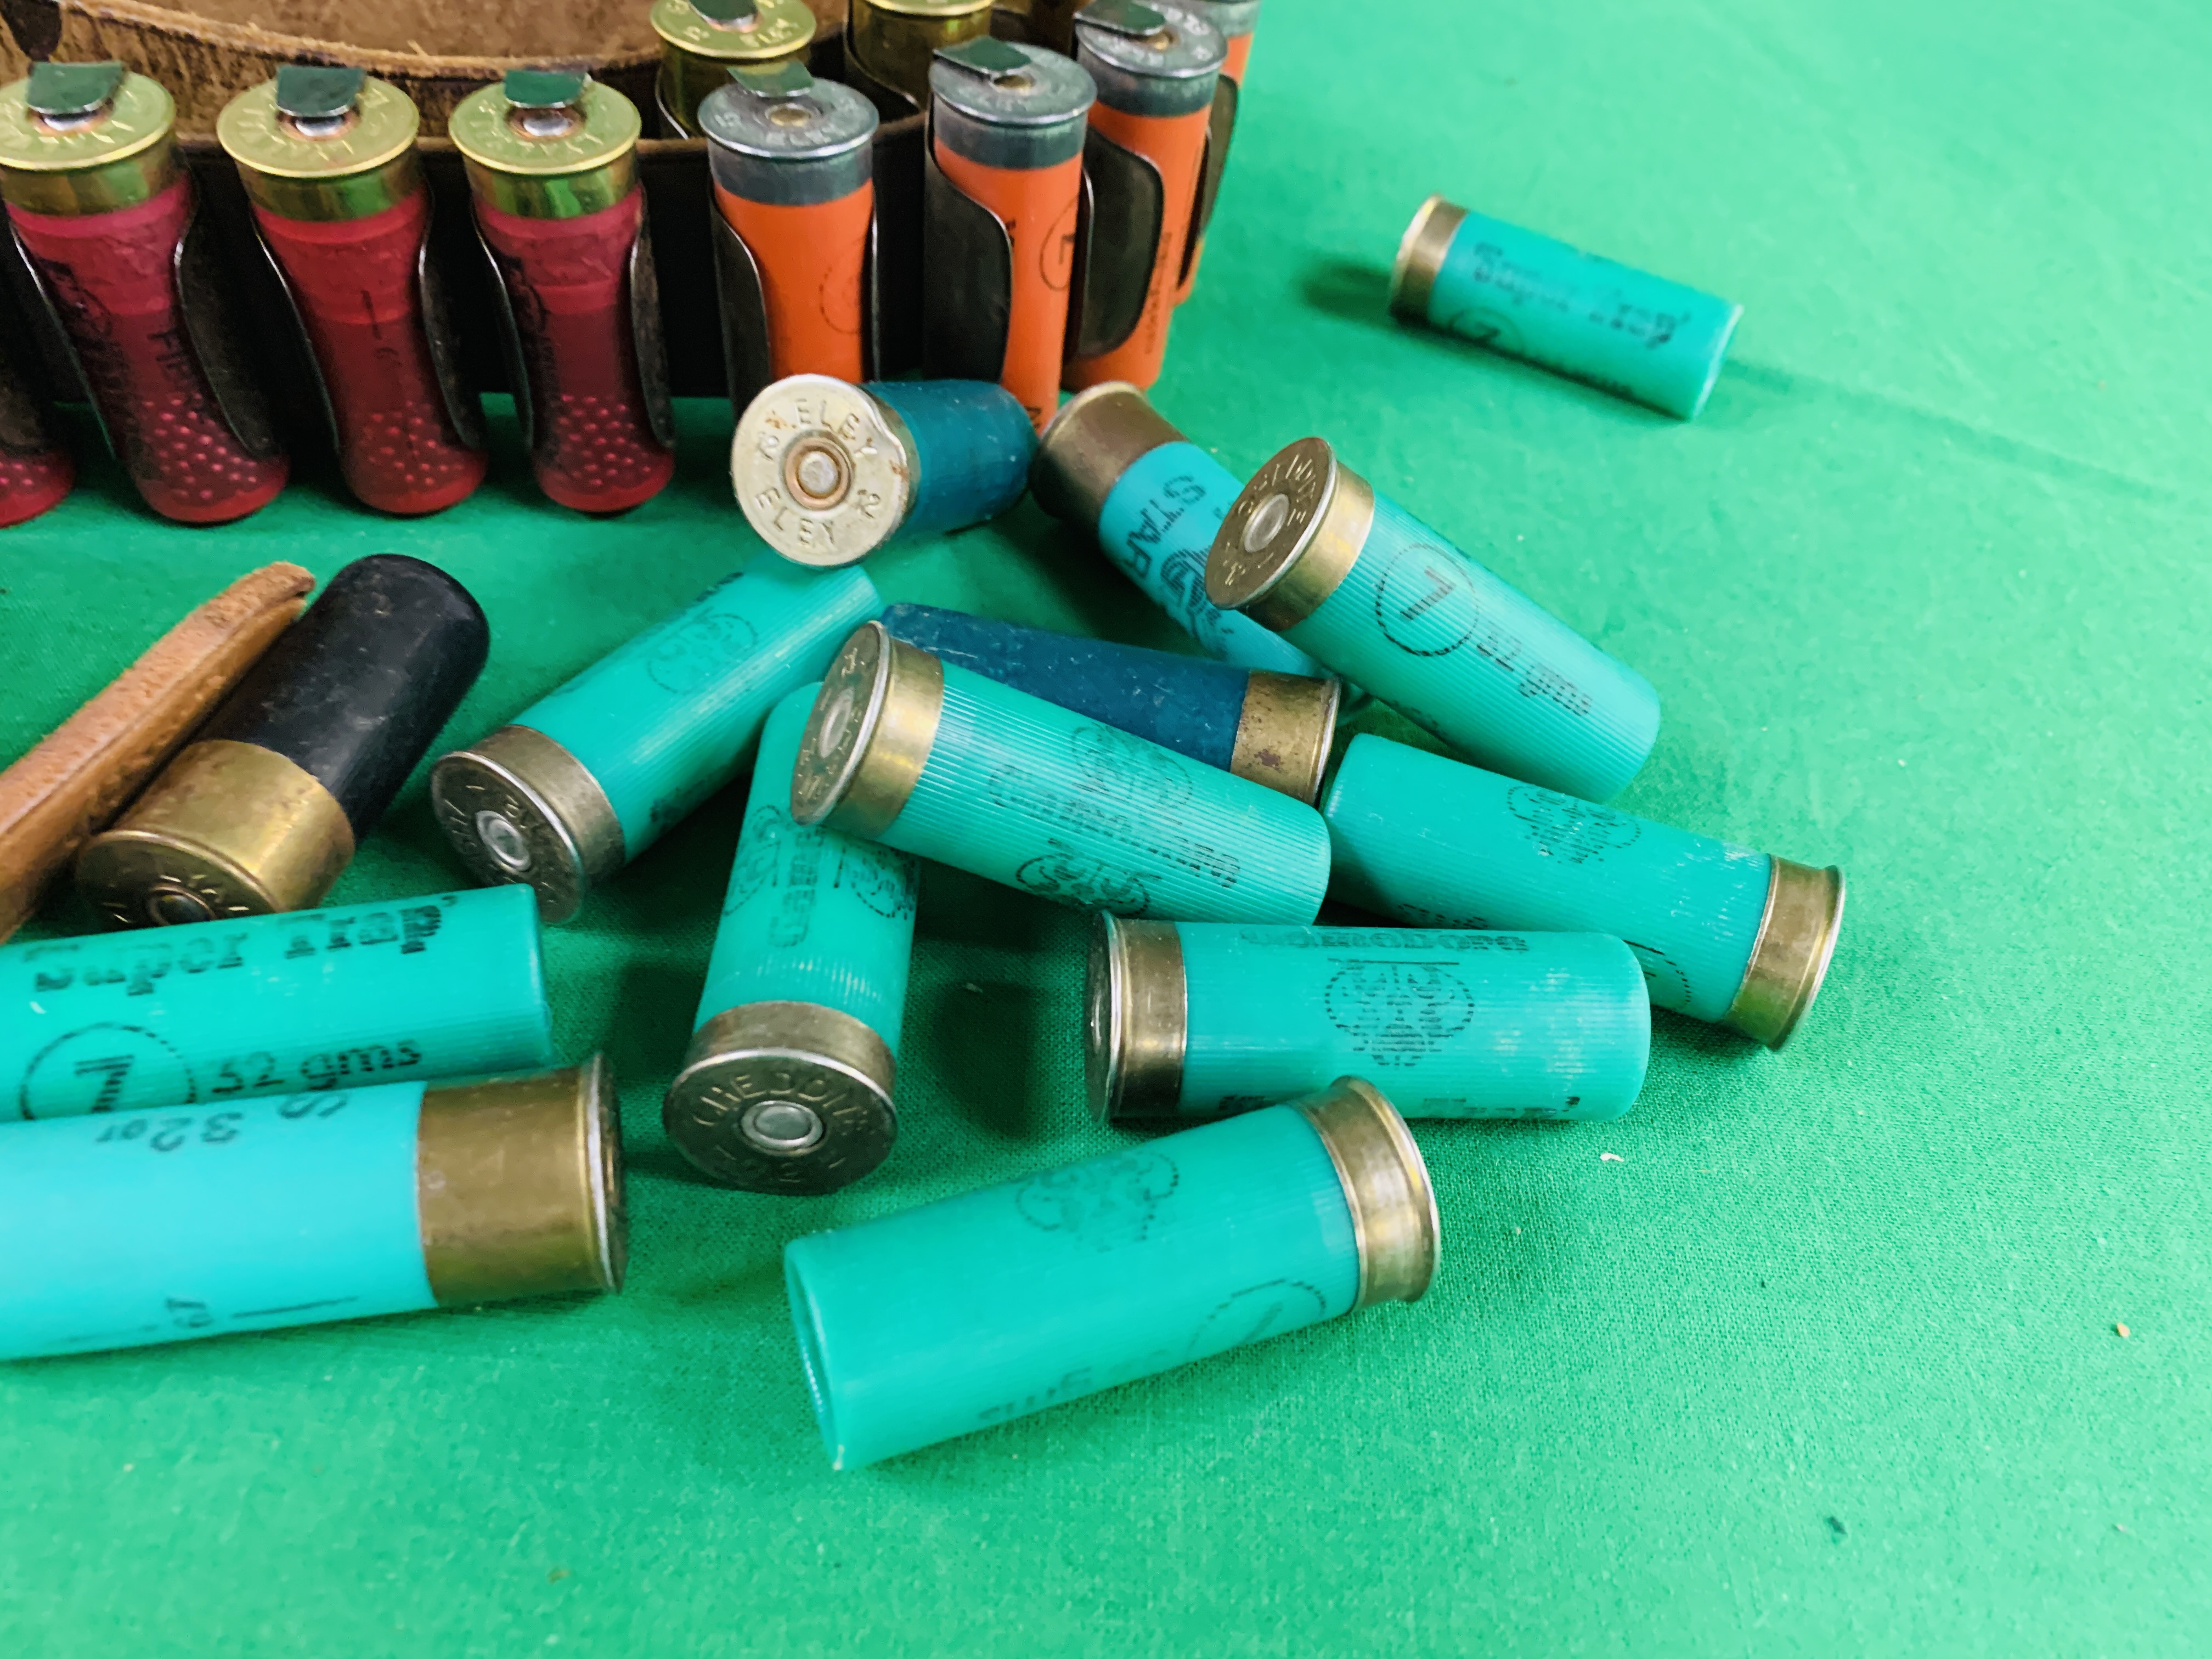 A COLLECTION OF SHOTGUN AMMUNITION TO INCLUDE 12G, .22 BIRD SHOT, . - Image 2 of 6